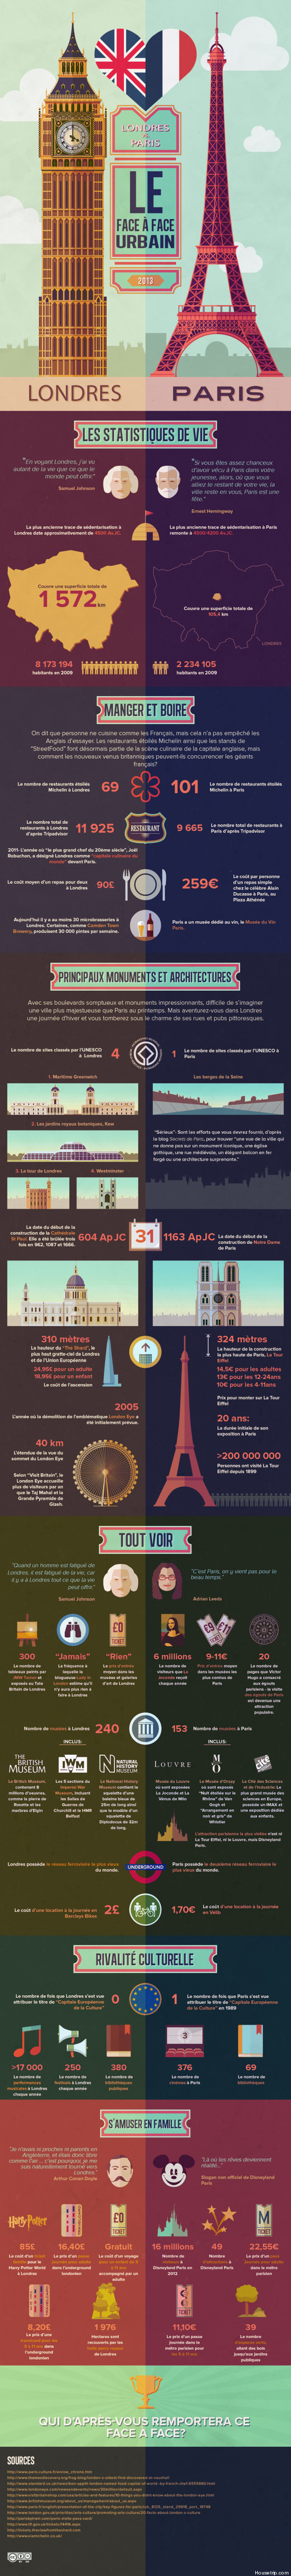 infographie londres paris